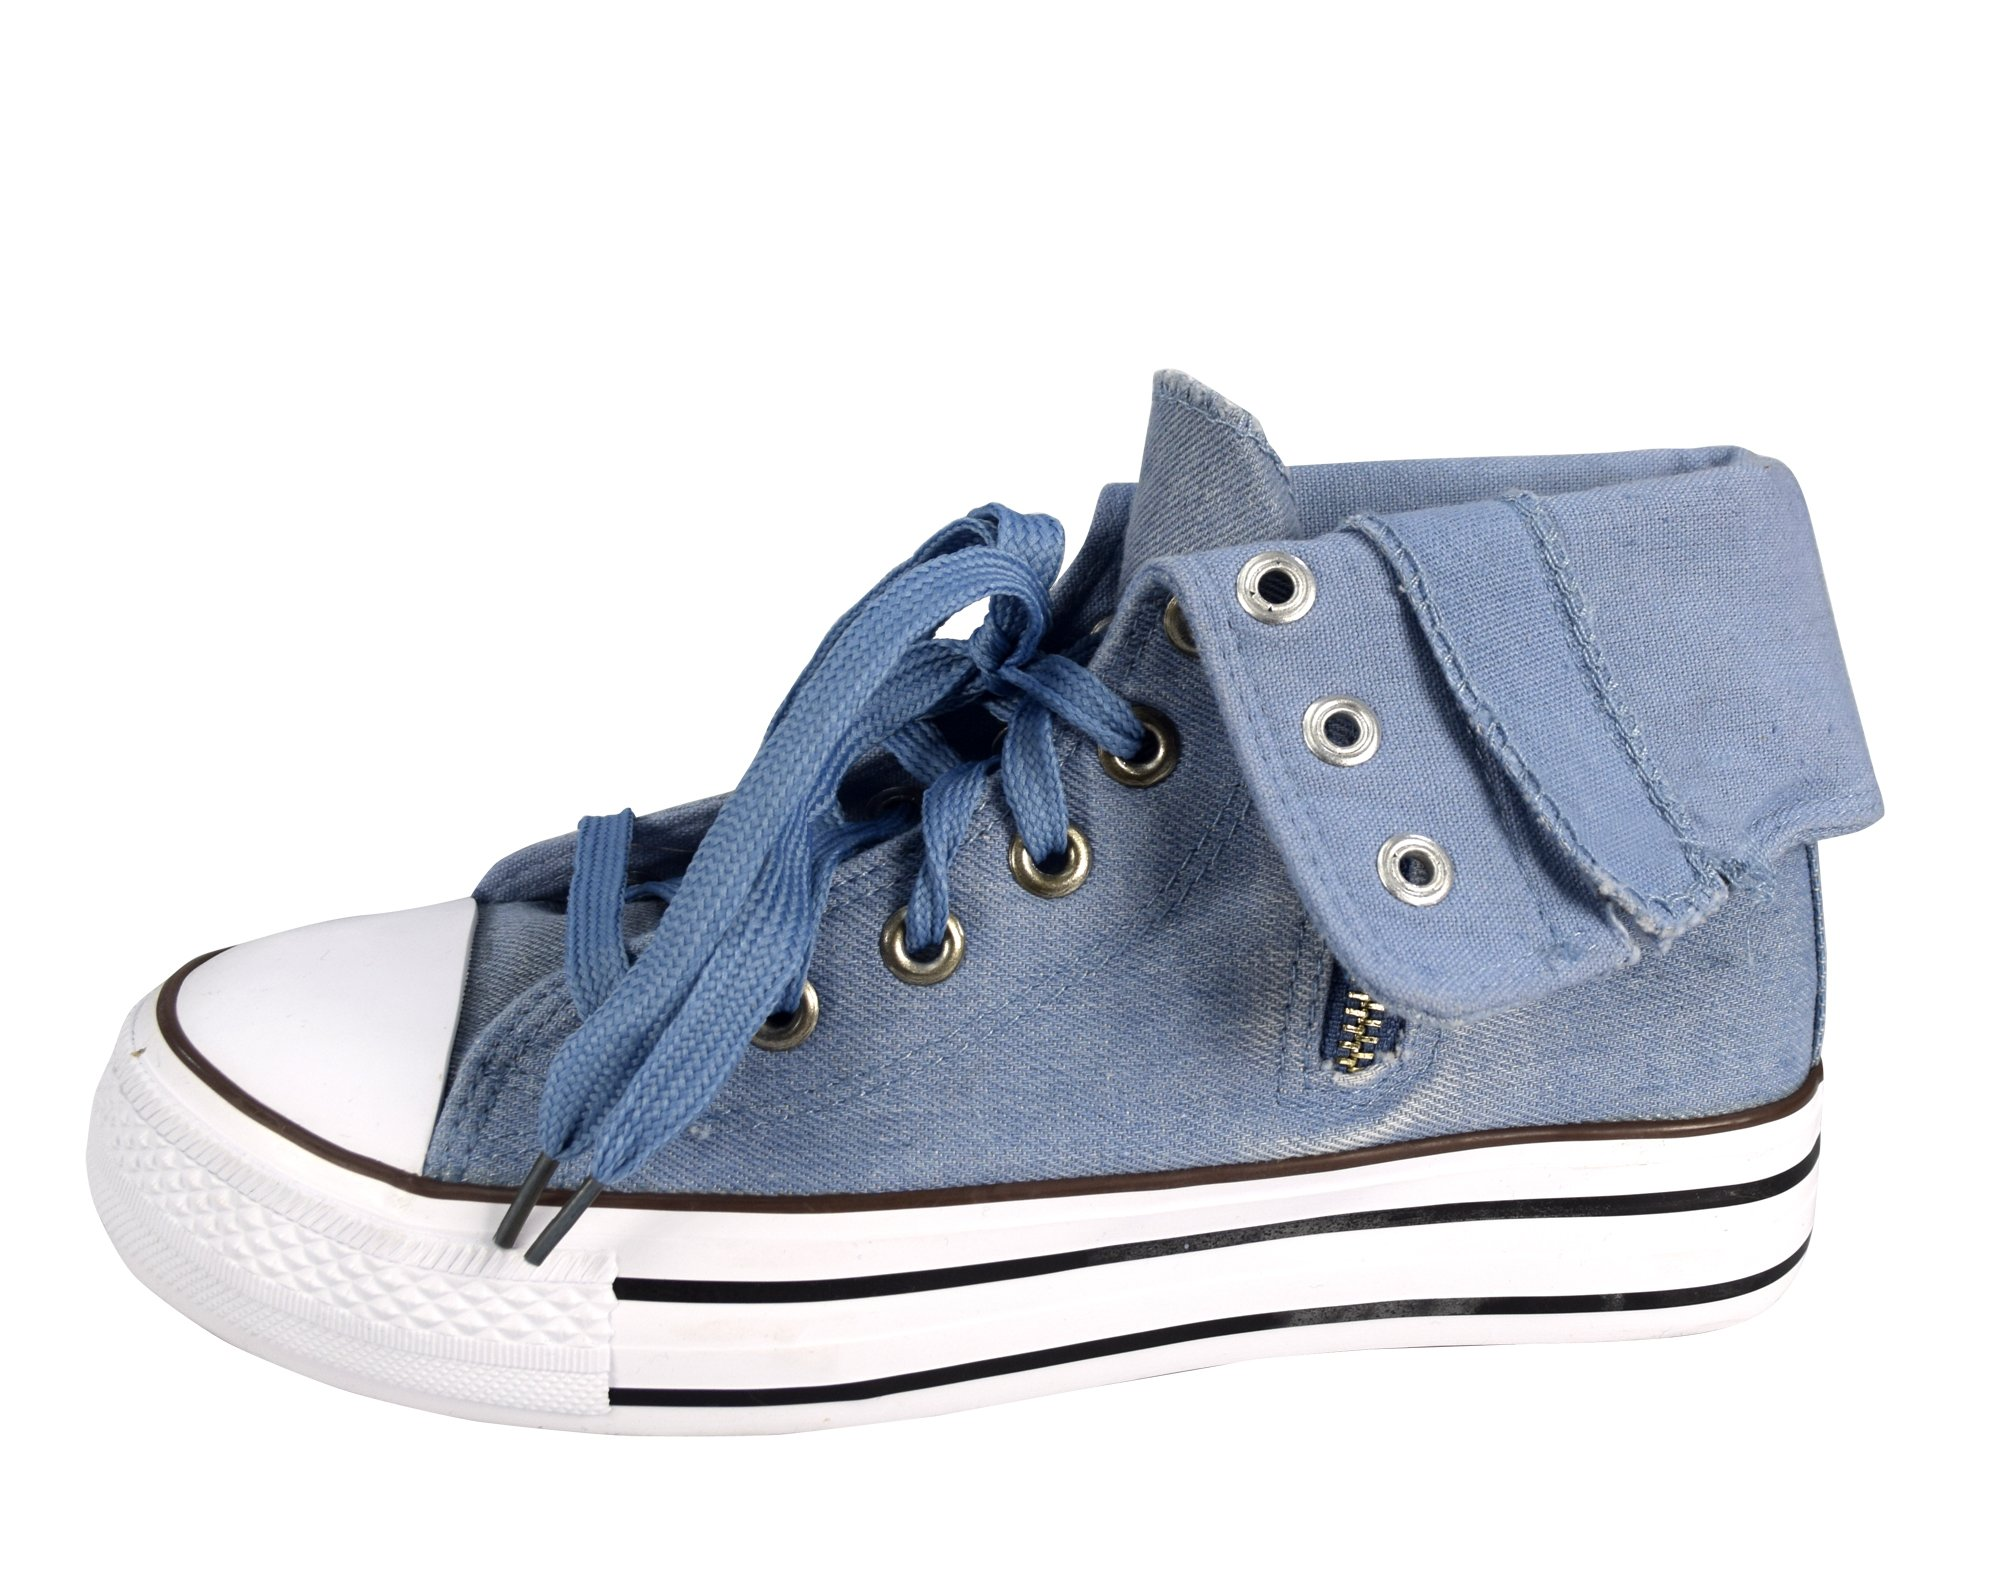 Peach Couture Taylor Fold Over Side Zipper Canvas High Top Sneaker Shoes Light Blue, 10